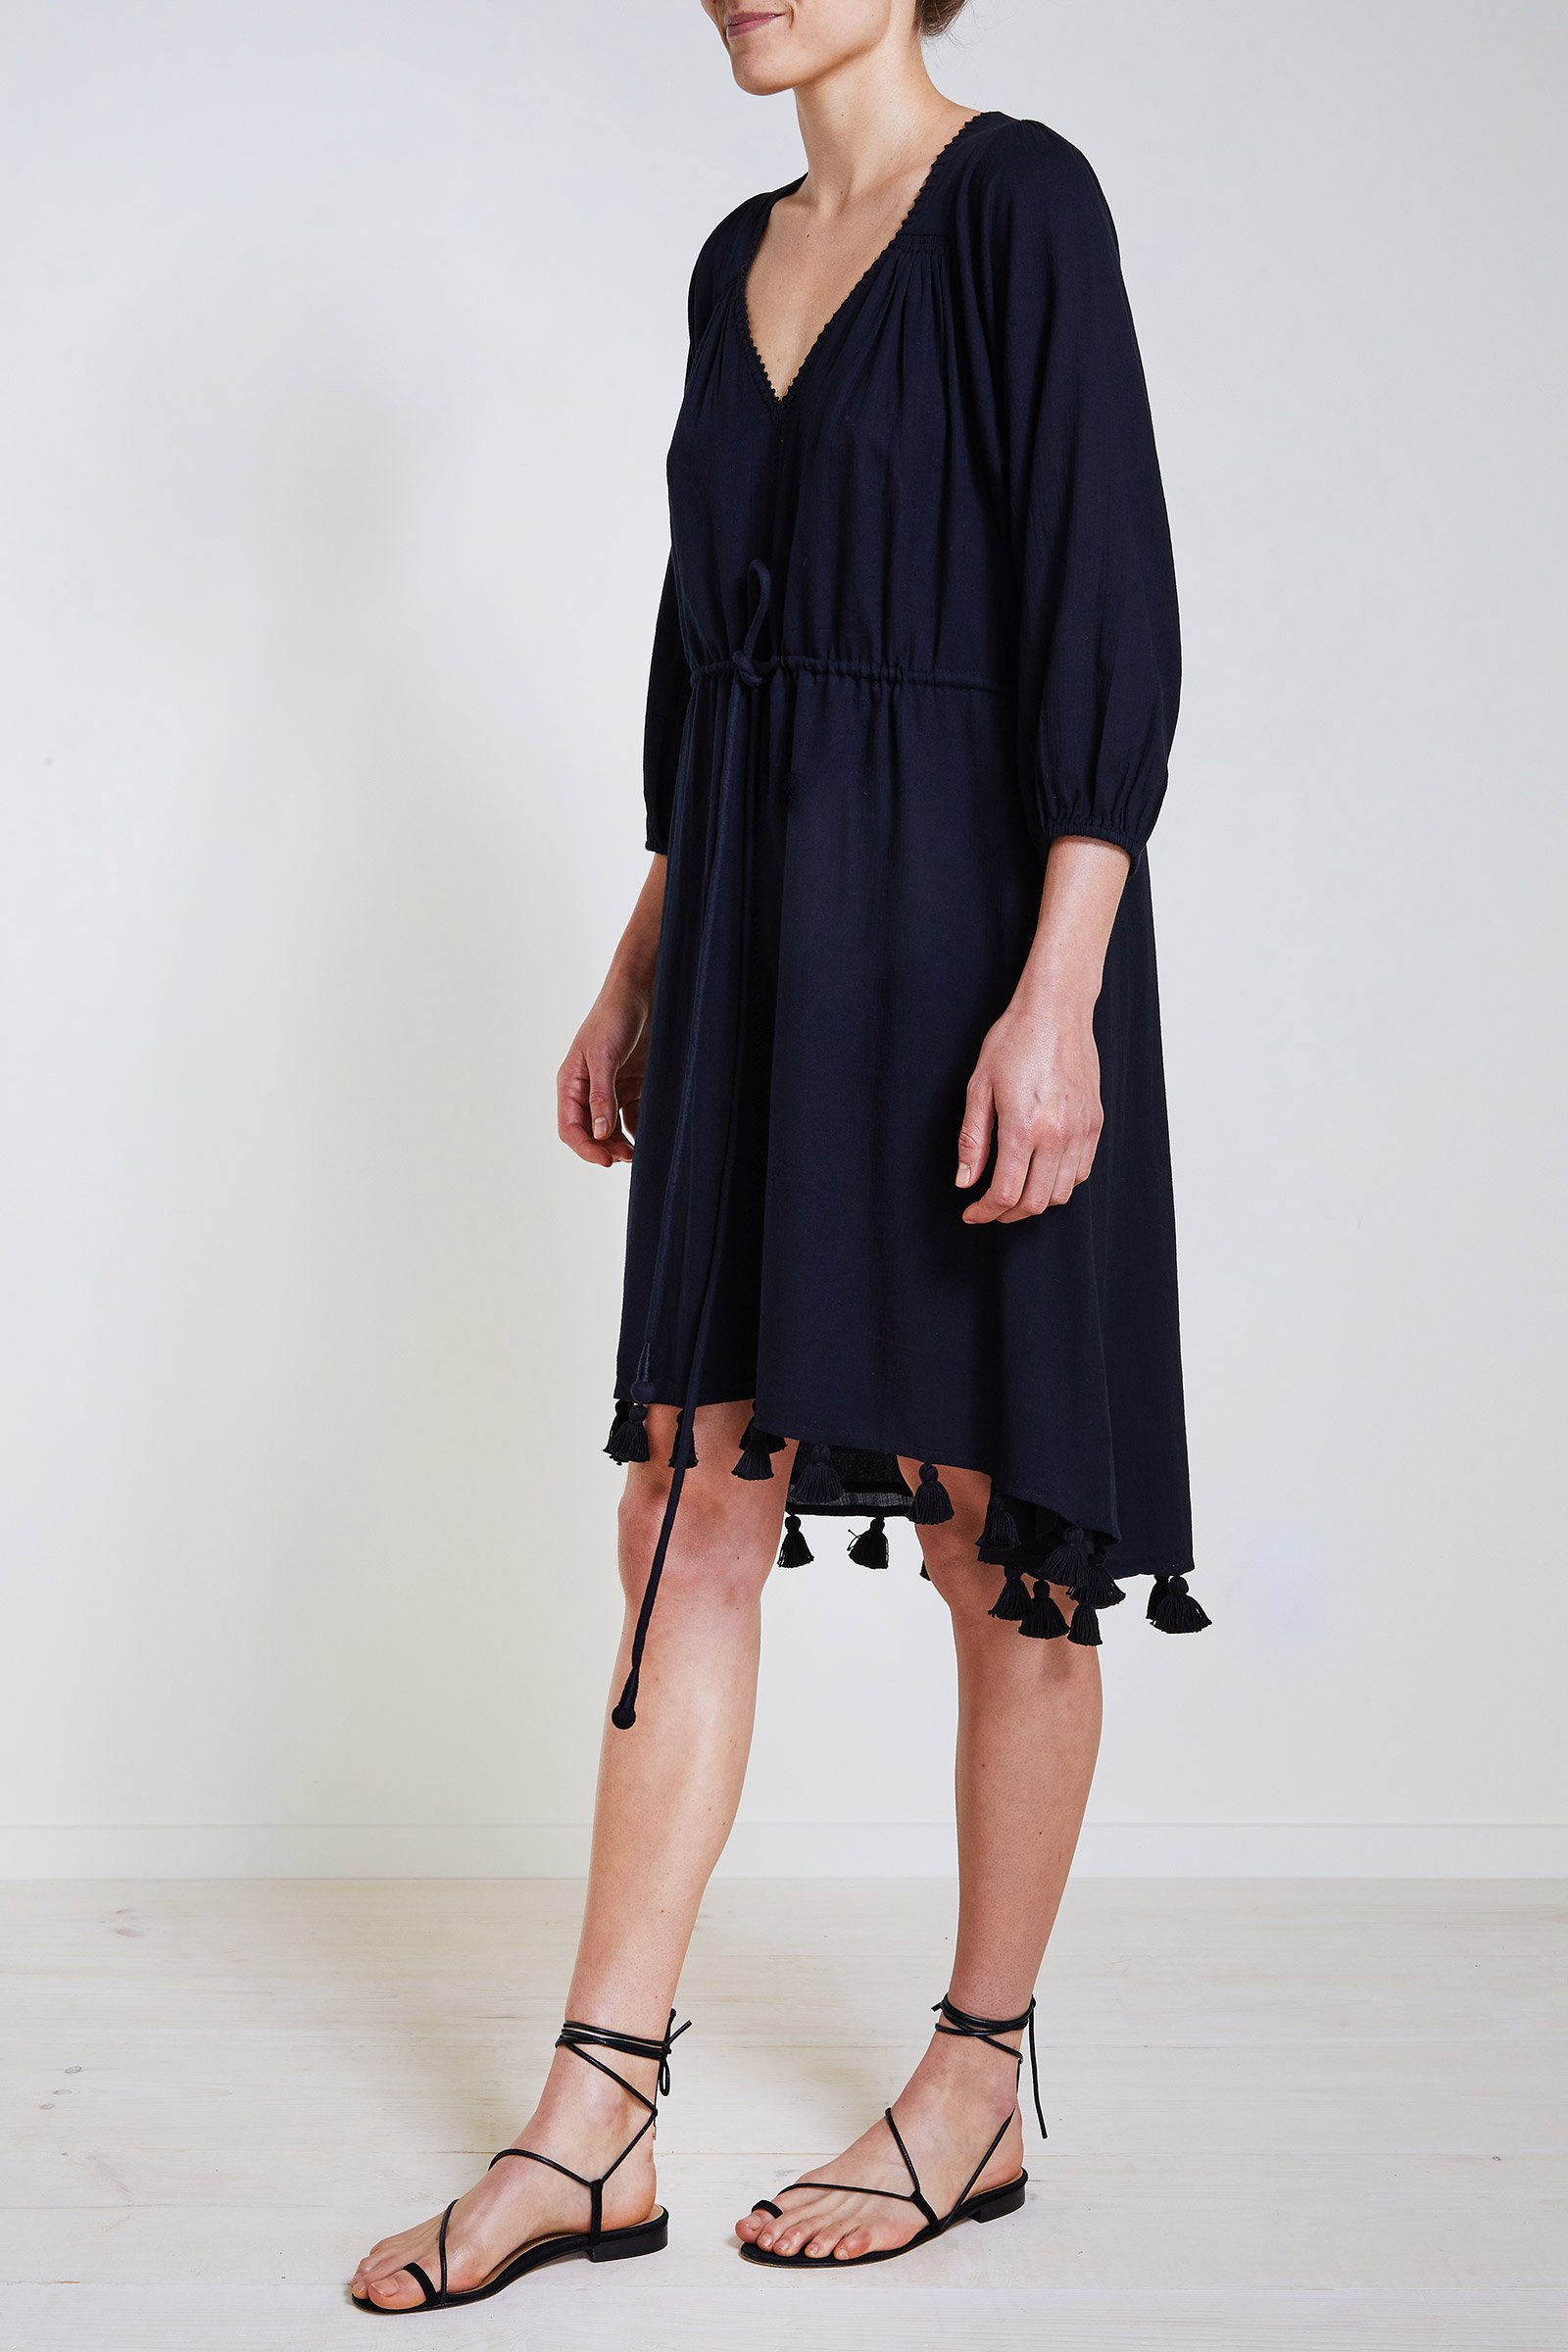 apa black dress